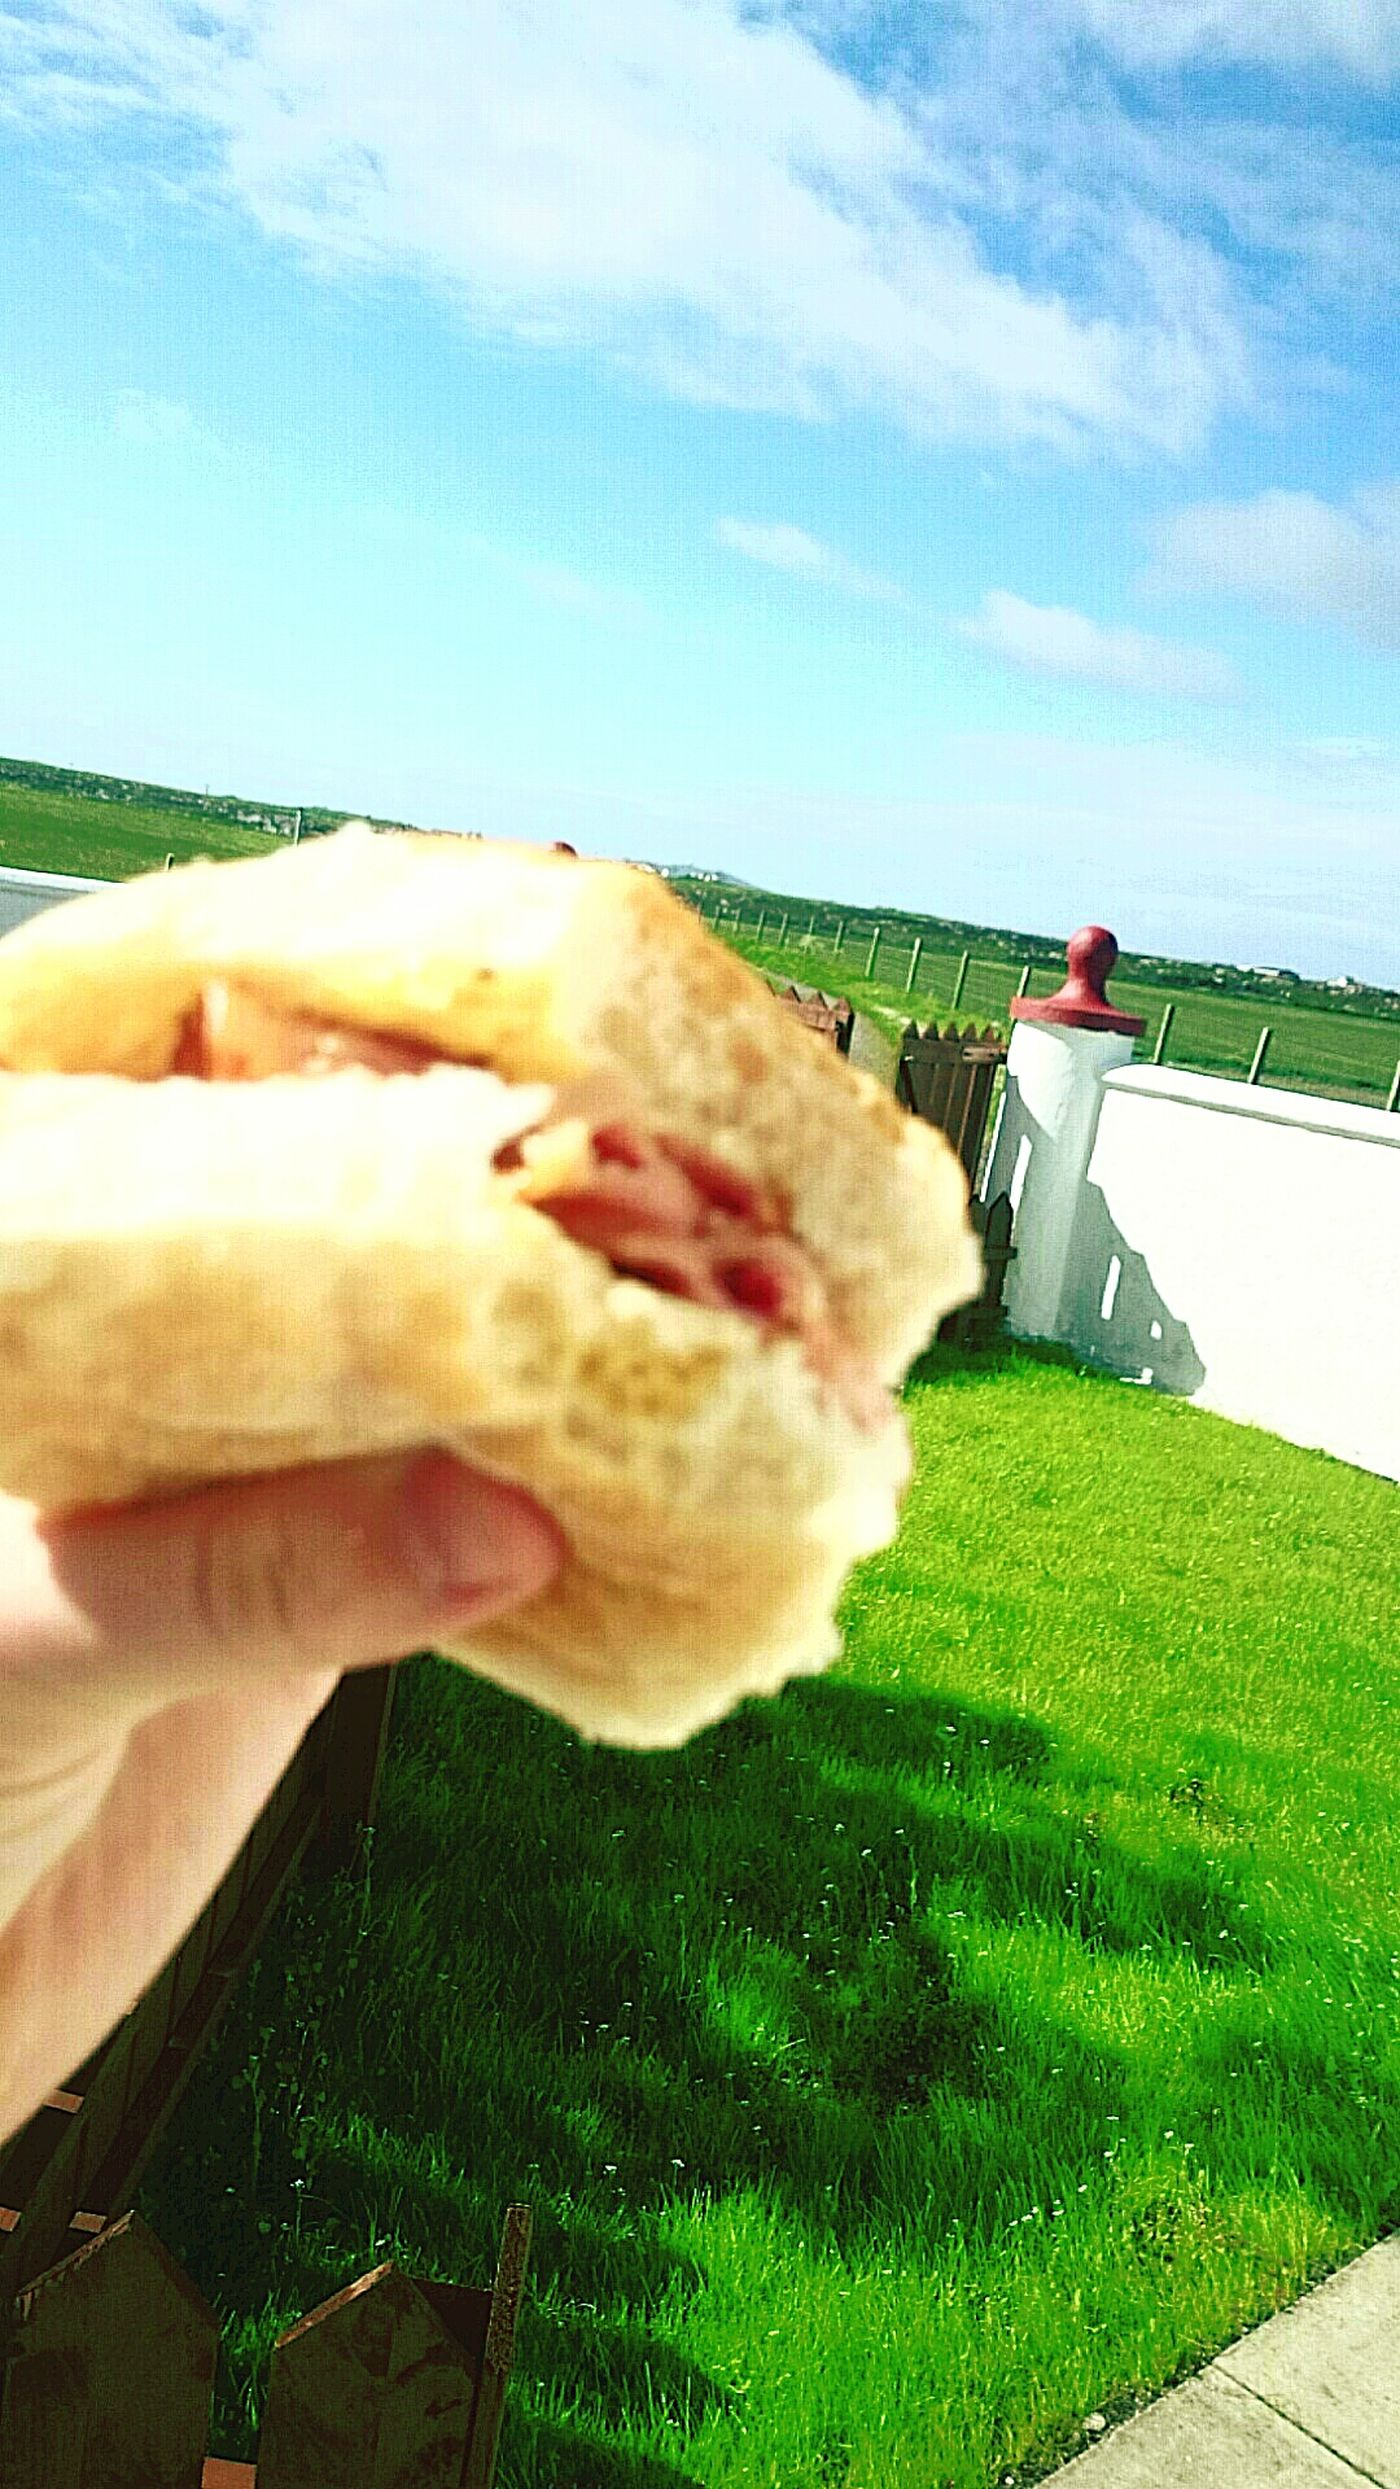 Morning Outdoors Tiree Scotland Sky Bacon Roll Sunny Day Relax Holiday Chill